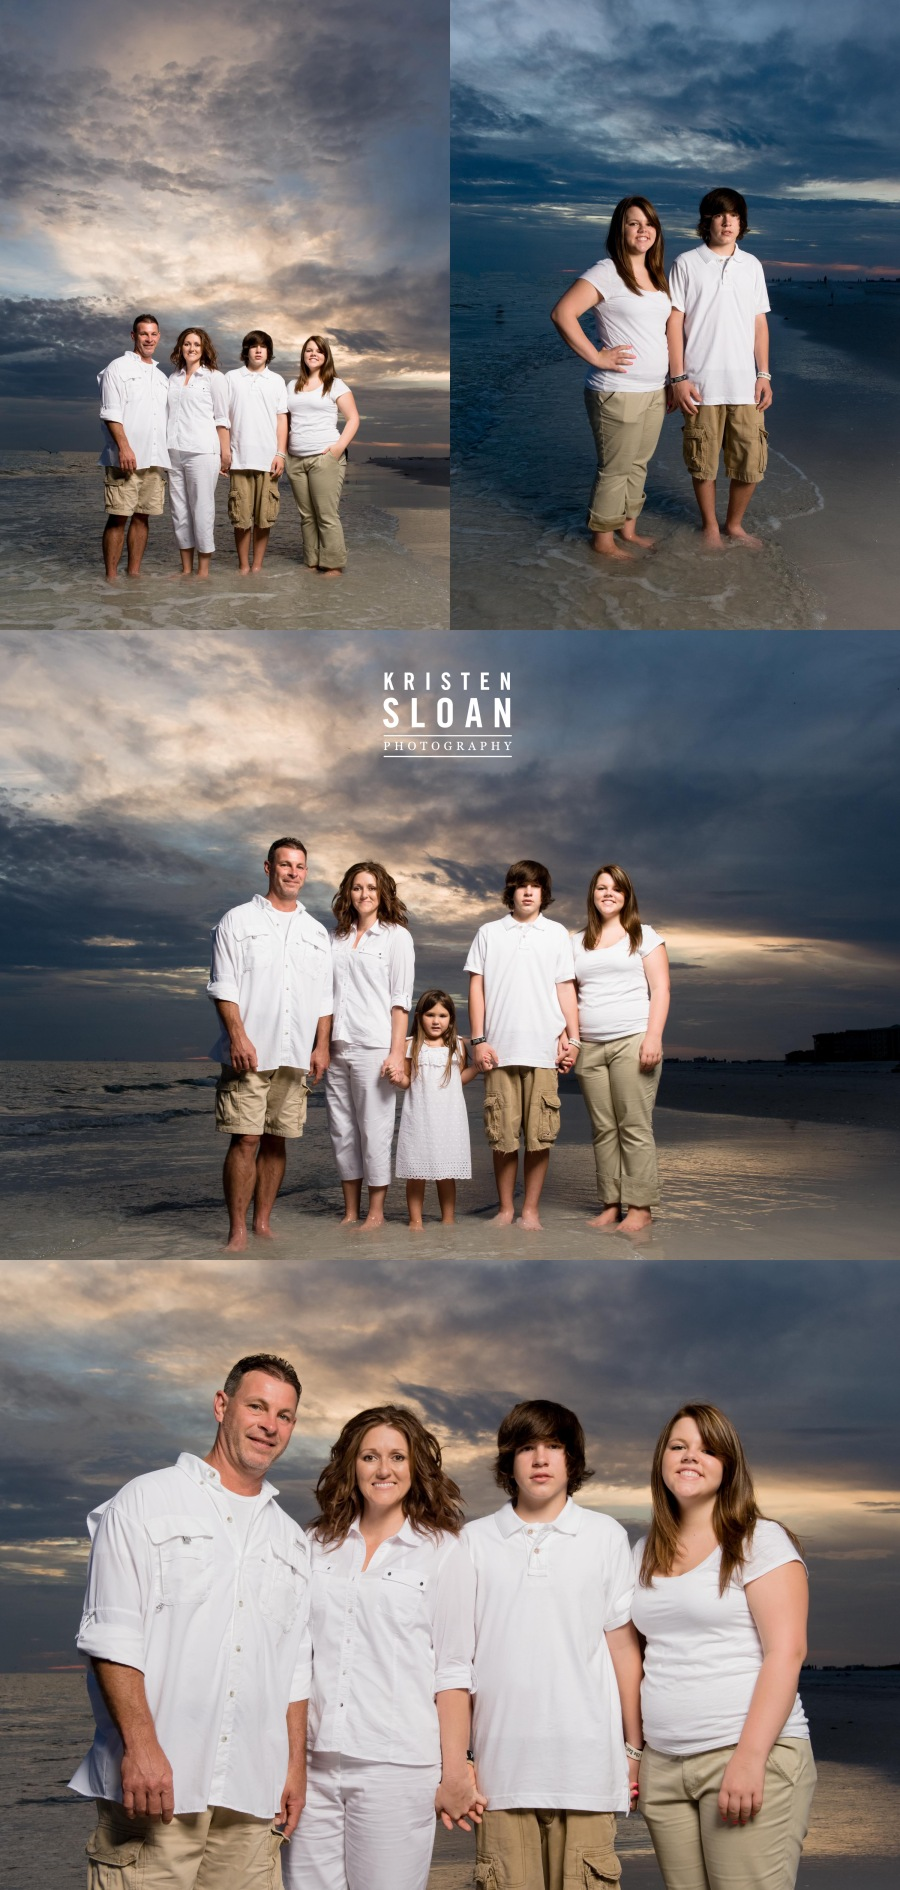 St Pete Beach Treasure Island FL Sunset Portraits